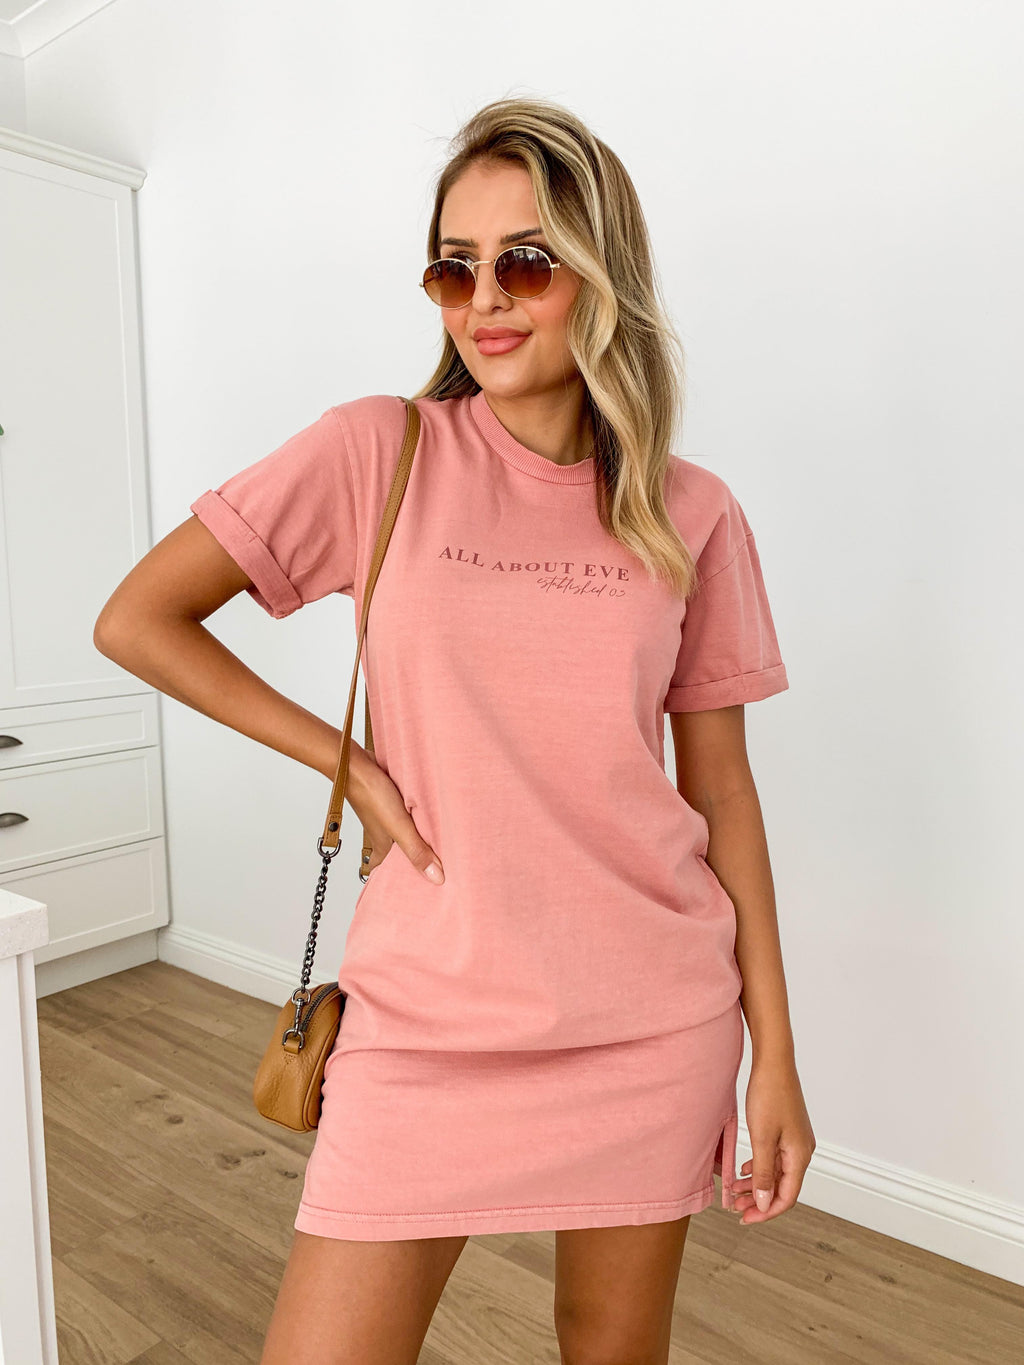 All About Eve Washed Tee Dress - Plum